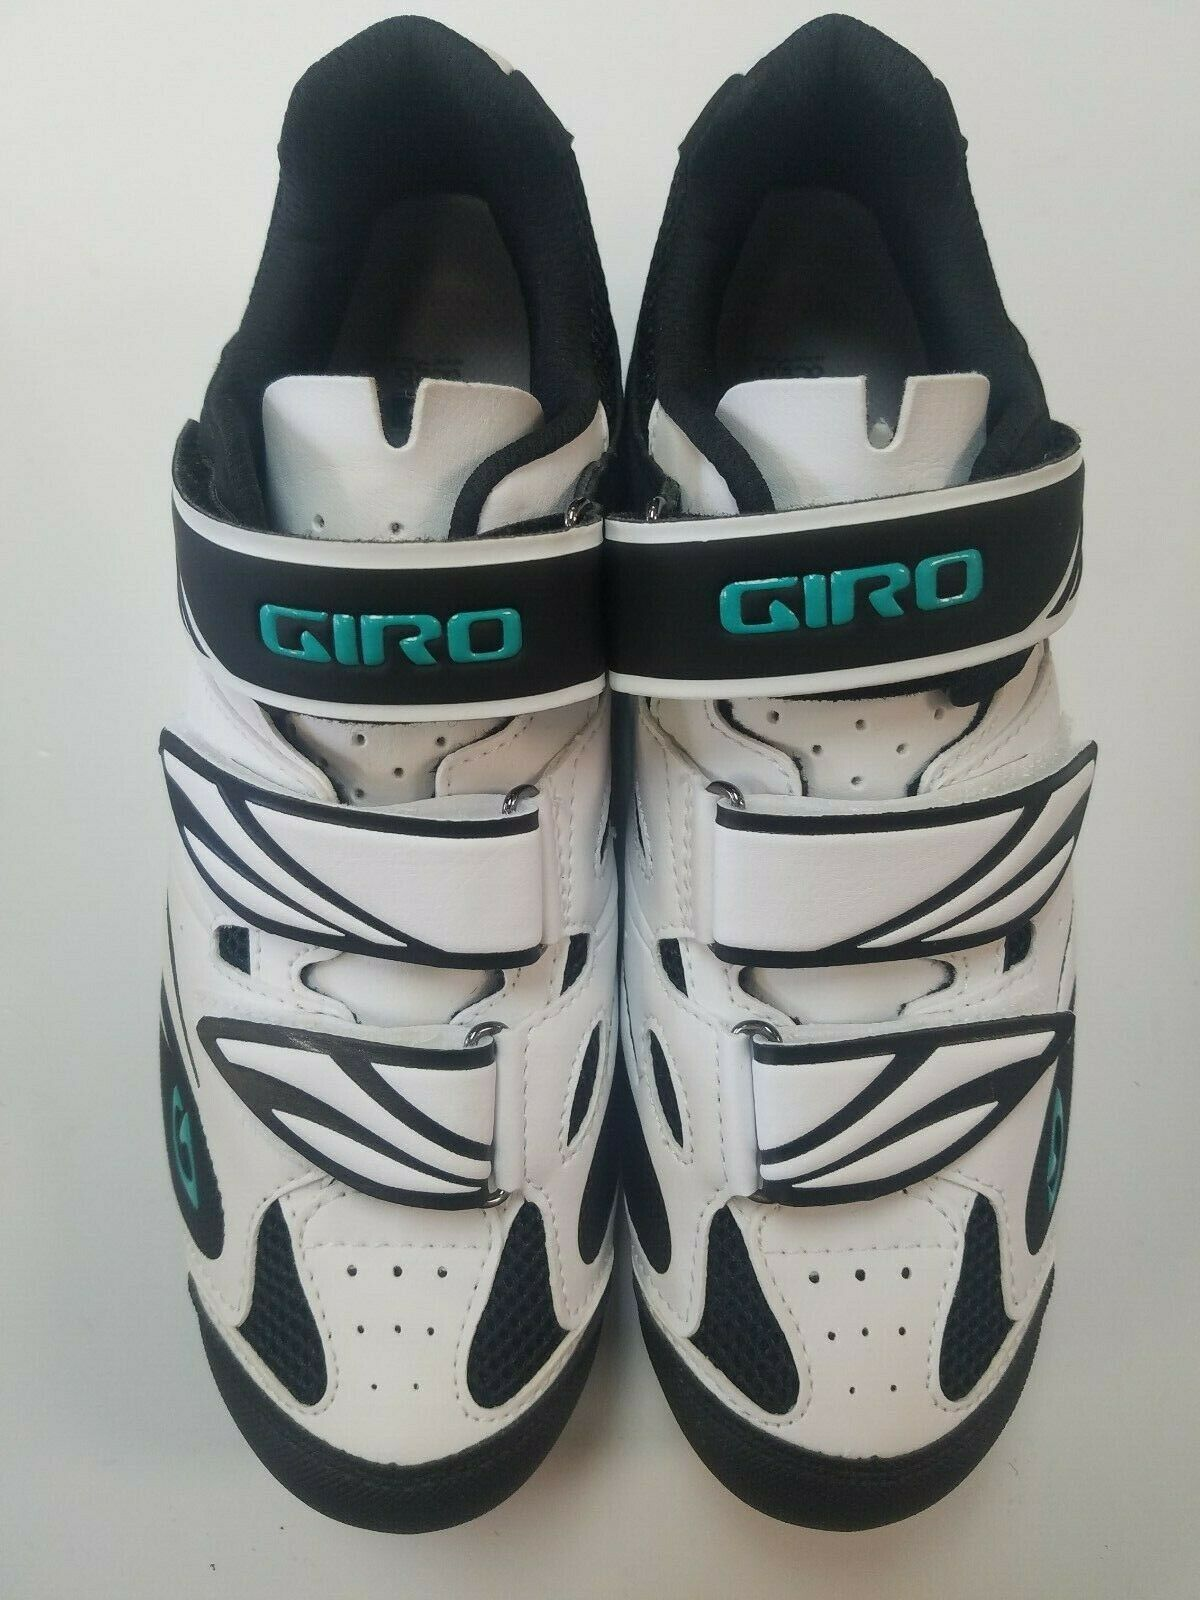 NEW in Box Giro Riela donna Cycling scarpe EU 40 US 8.5 MTB scarpe